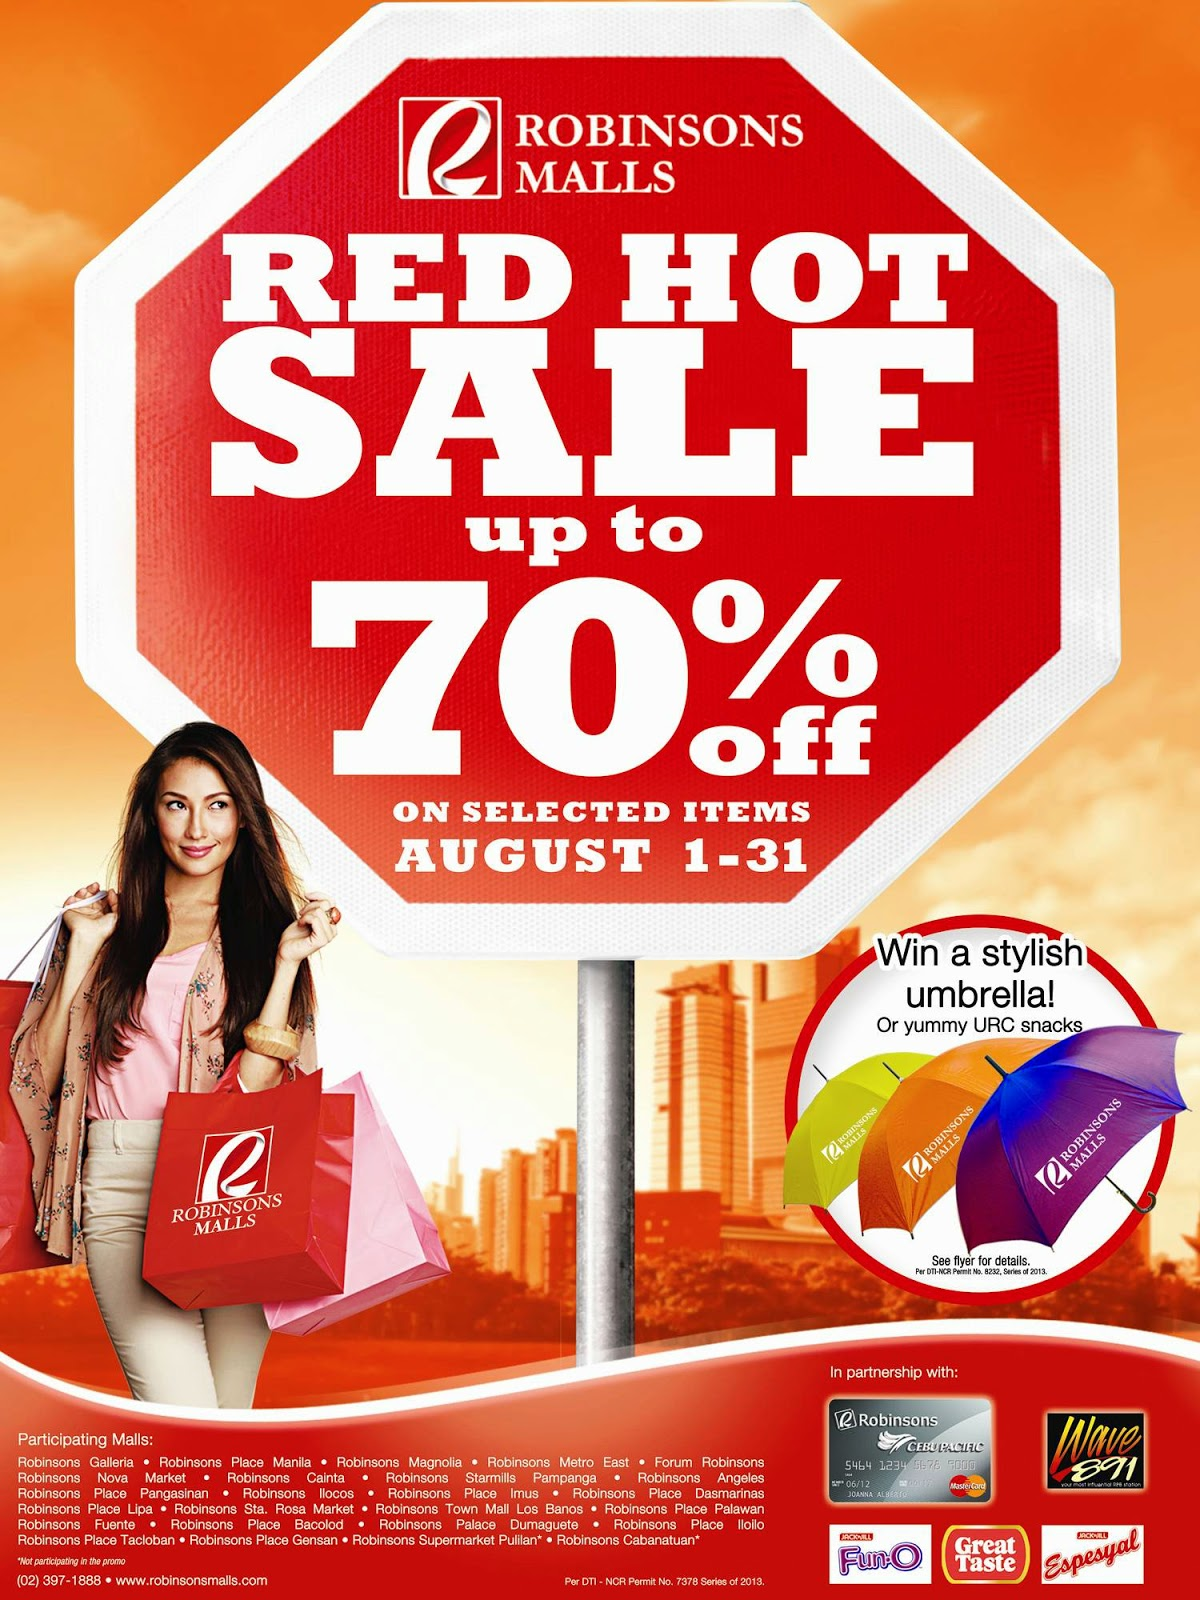 Robinsons Malls Red Hot Sale from August 1-31, 2014